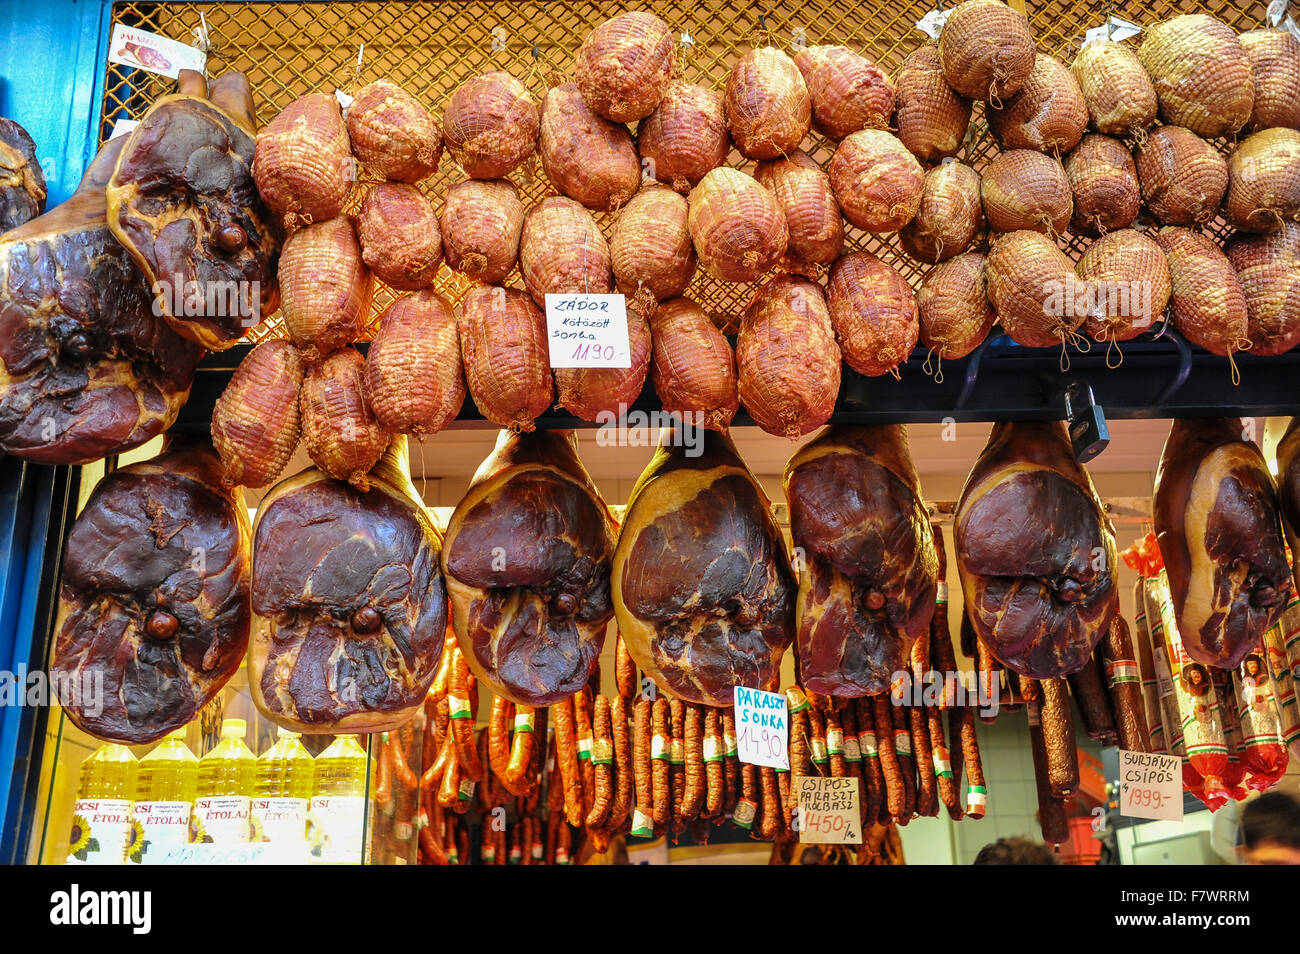 Cured Meat in Vacuum Package, Budapest, Hungary - Stock Image